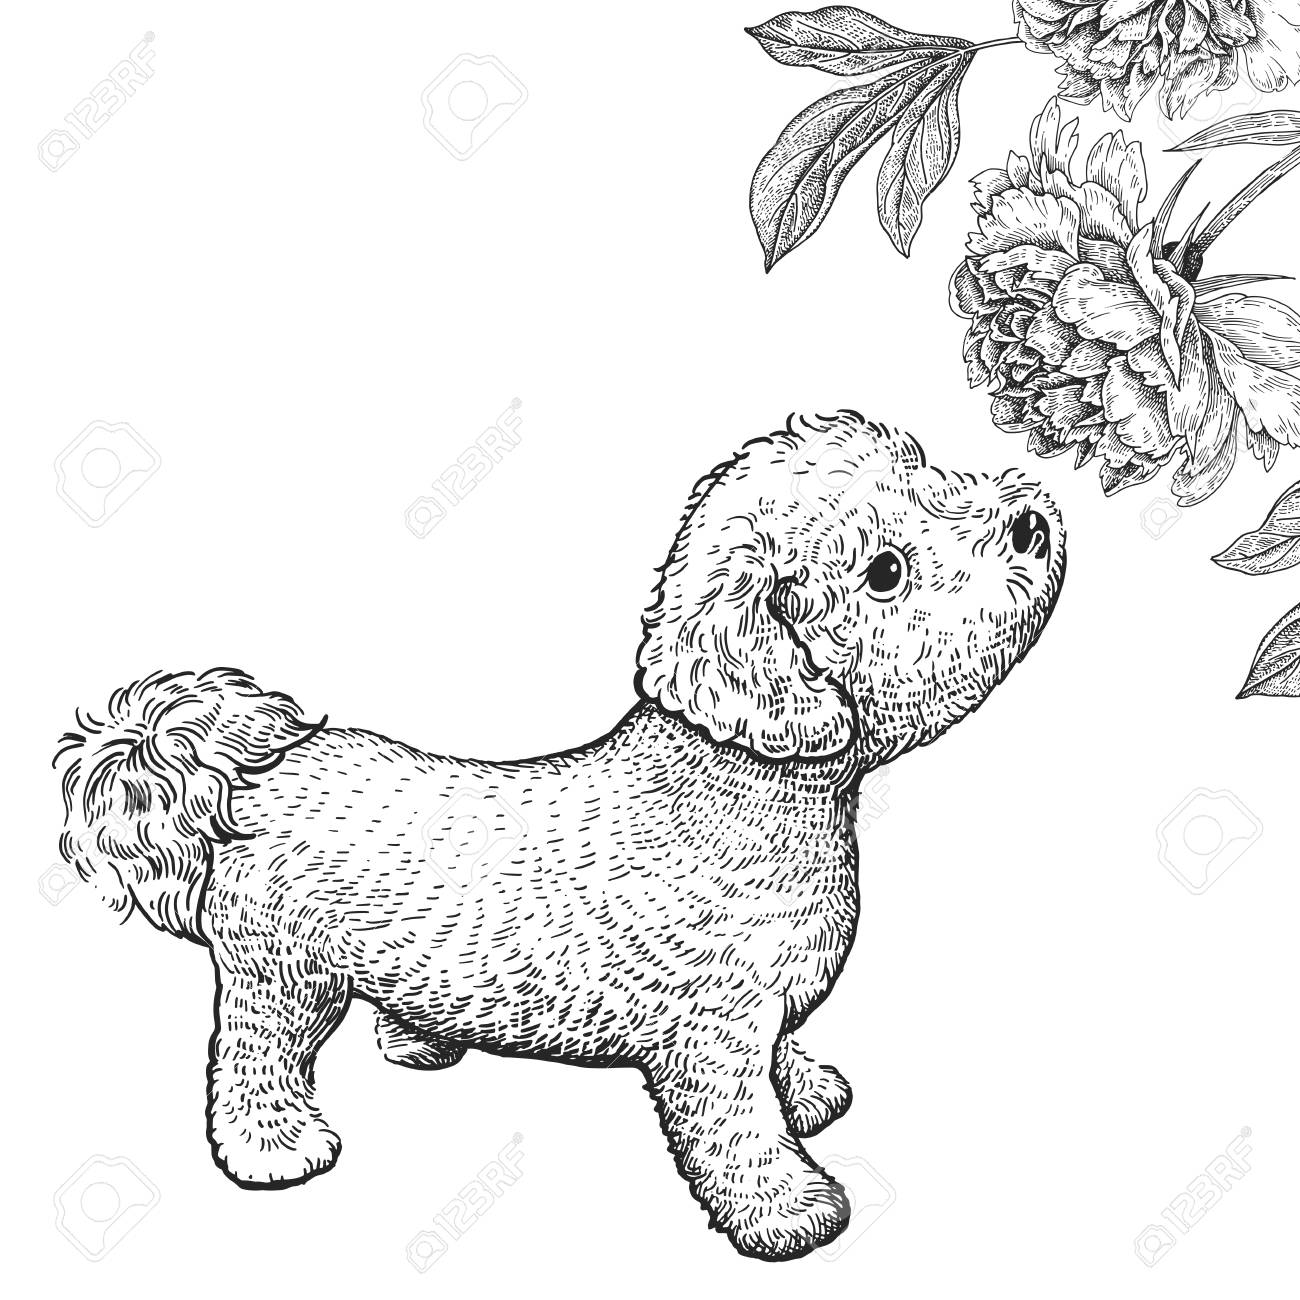 Cute Puppy Sniffing Peony Flower Home Pet Isolated On White Royalty Free Cliparts Vectors And Stock Illustration Image 110232647